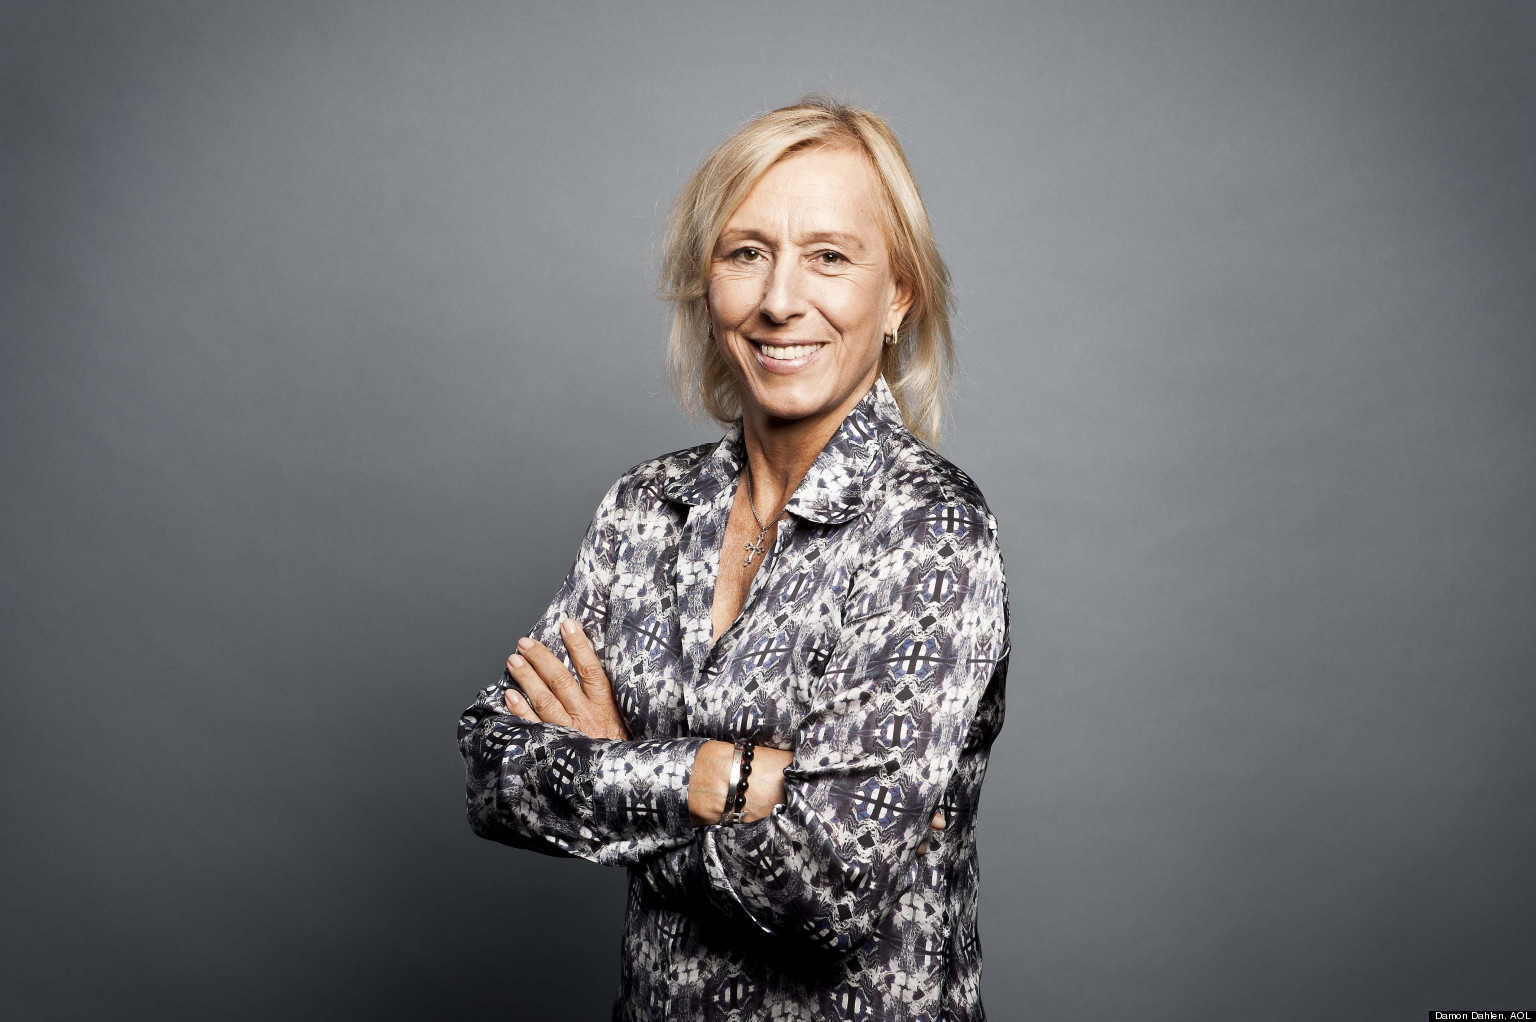 Martina Navratilova On Staying Fit, Coming Out, Battling Cancer And ...